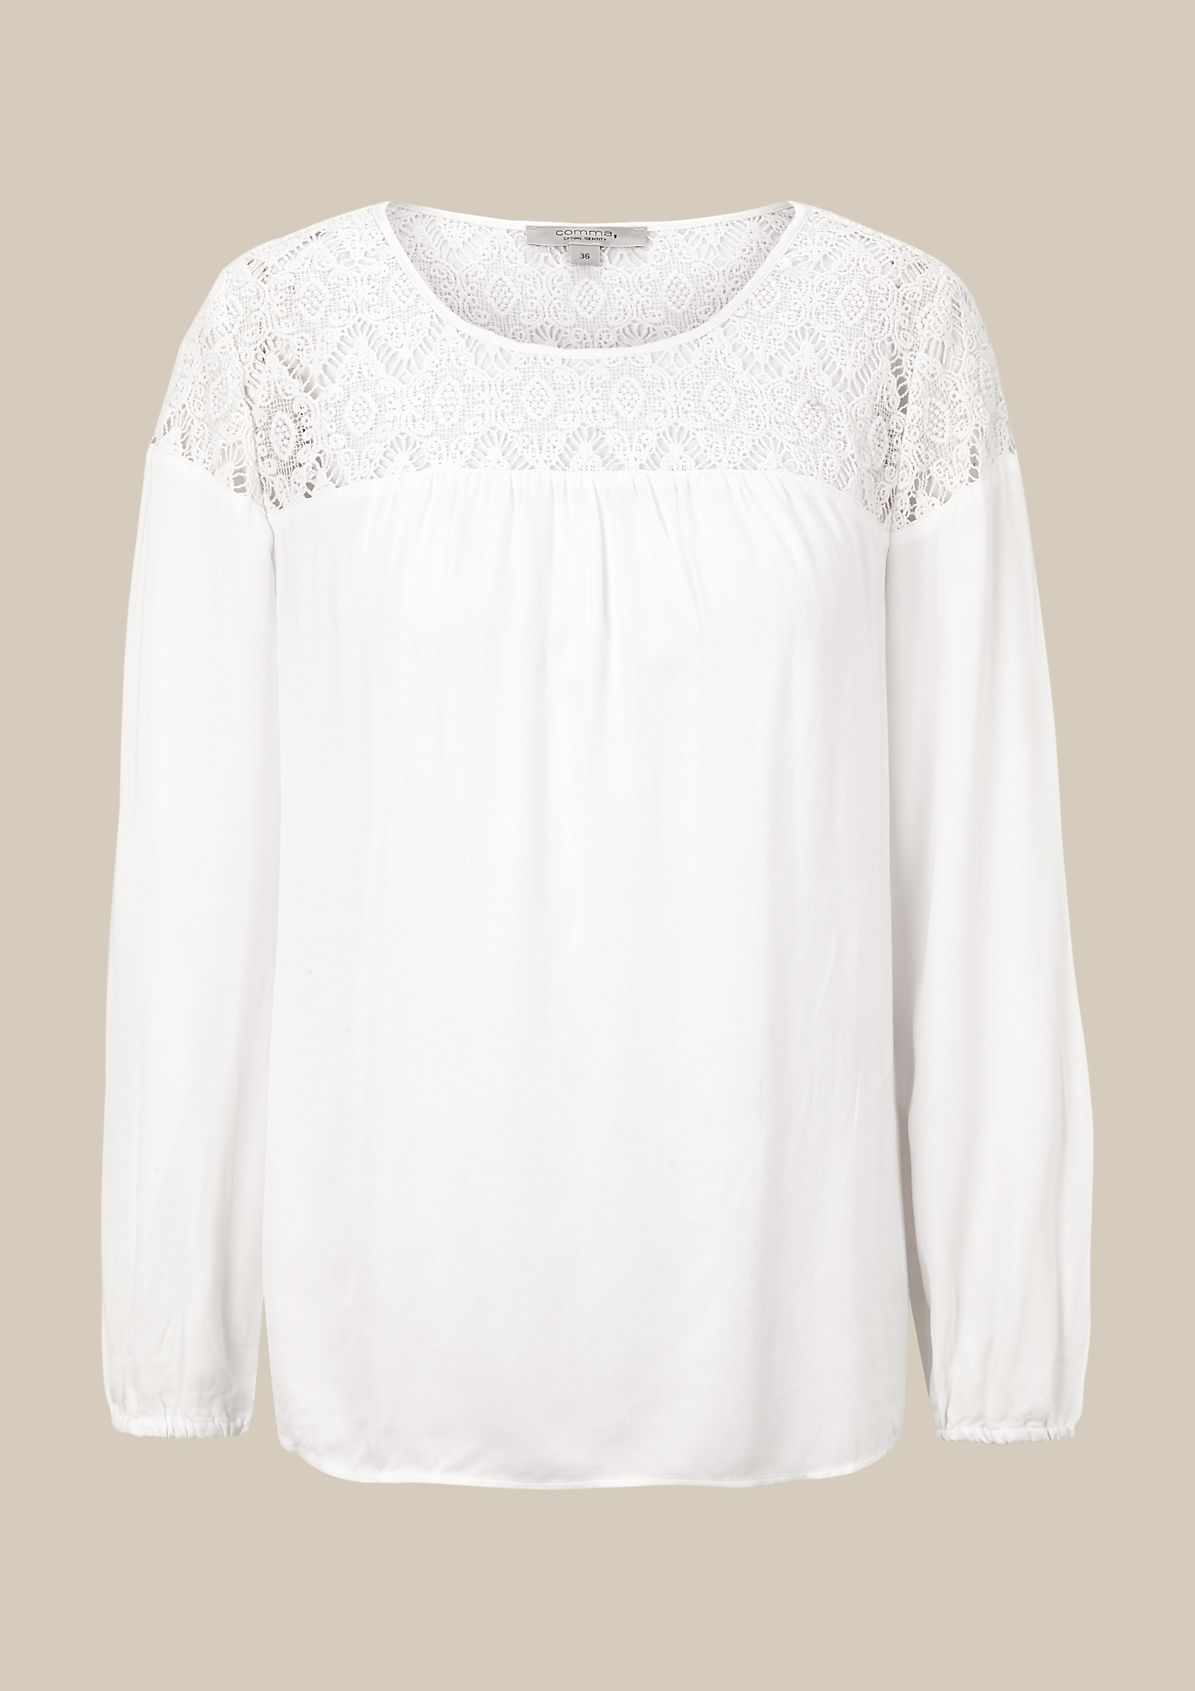 Casual satin blouse with a delicate lace trim from s.Oliver